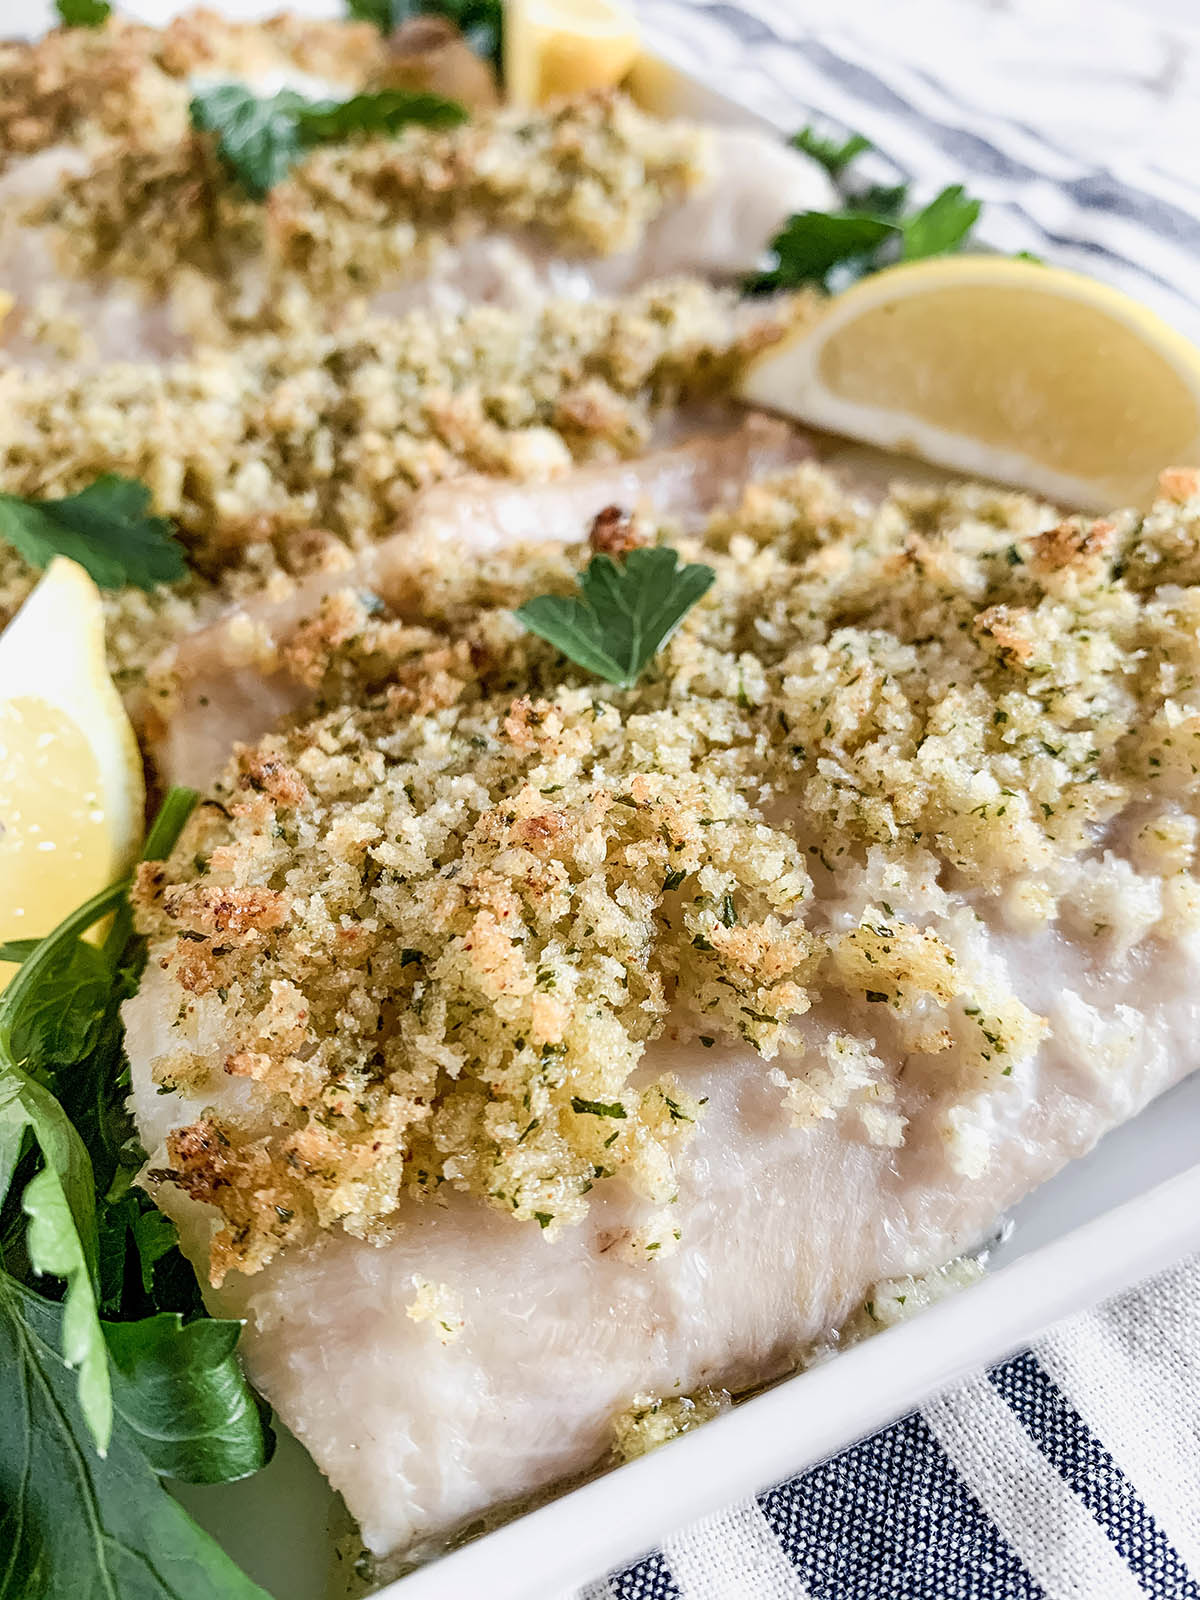 45º image of a portion of baked Panko-crusted whitefish on a platter with lemon wedges and fresh parsley.